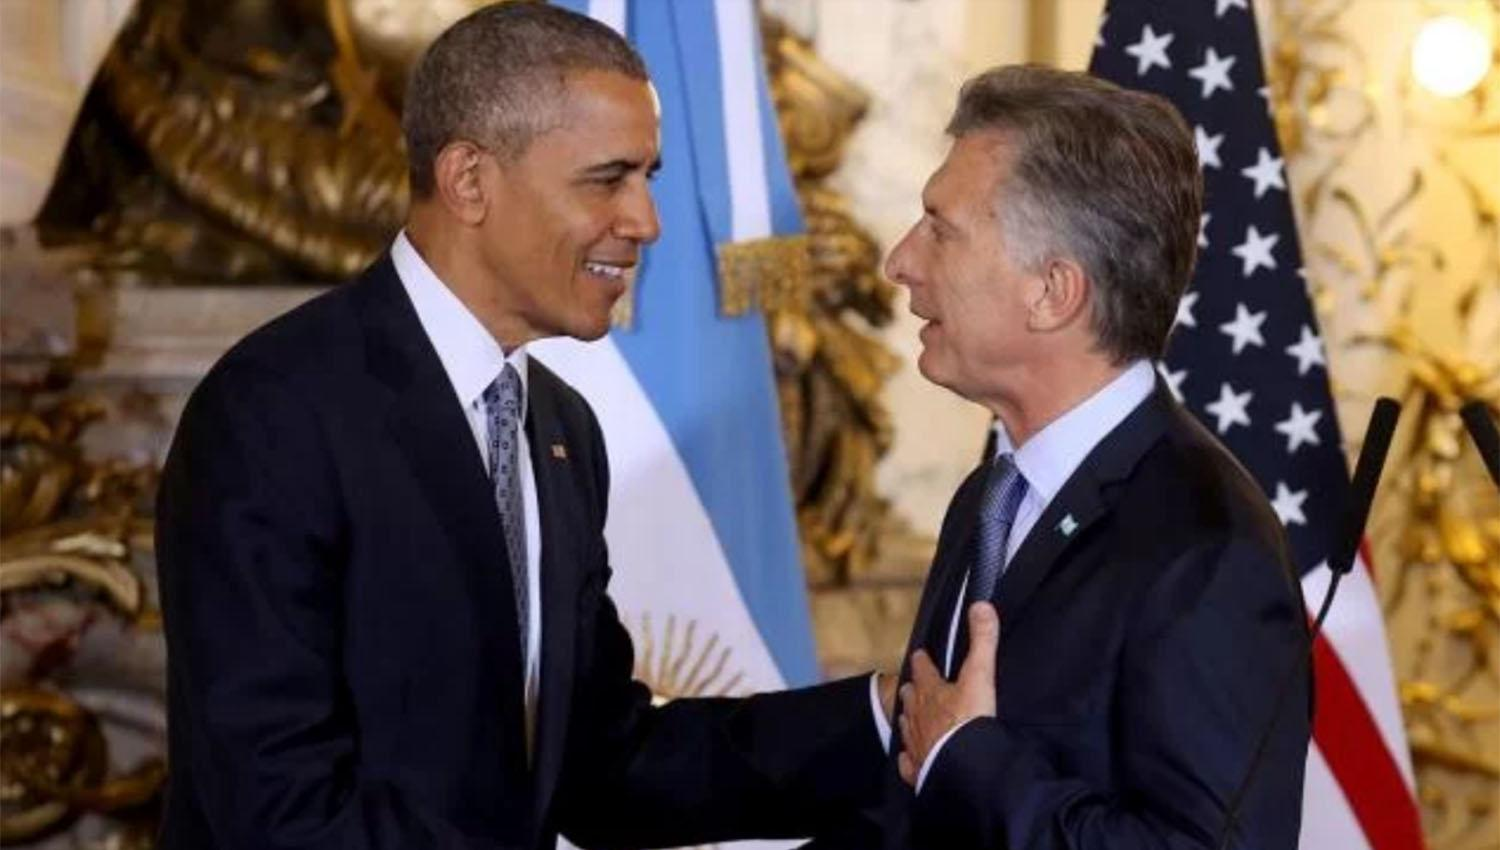 Macri recibió a Obama y jugaron al golf en Bella Vista